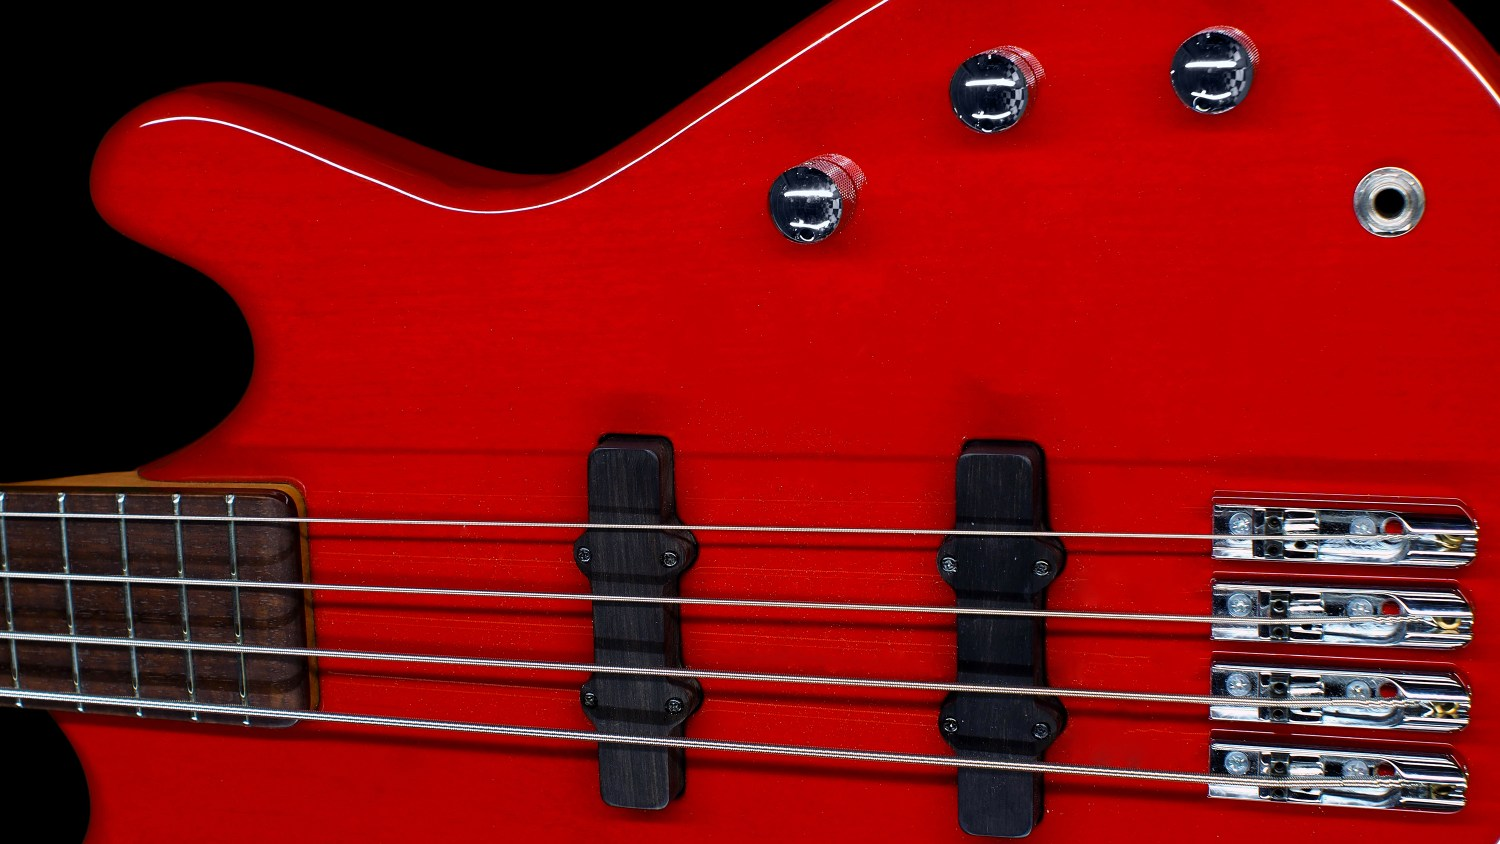 Roks Instruments Nardis Bass Delta Red Trans Body Angle